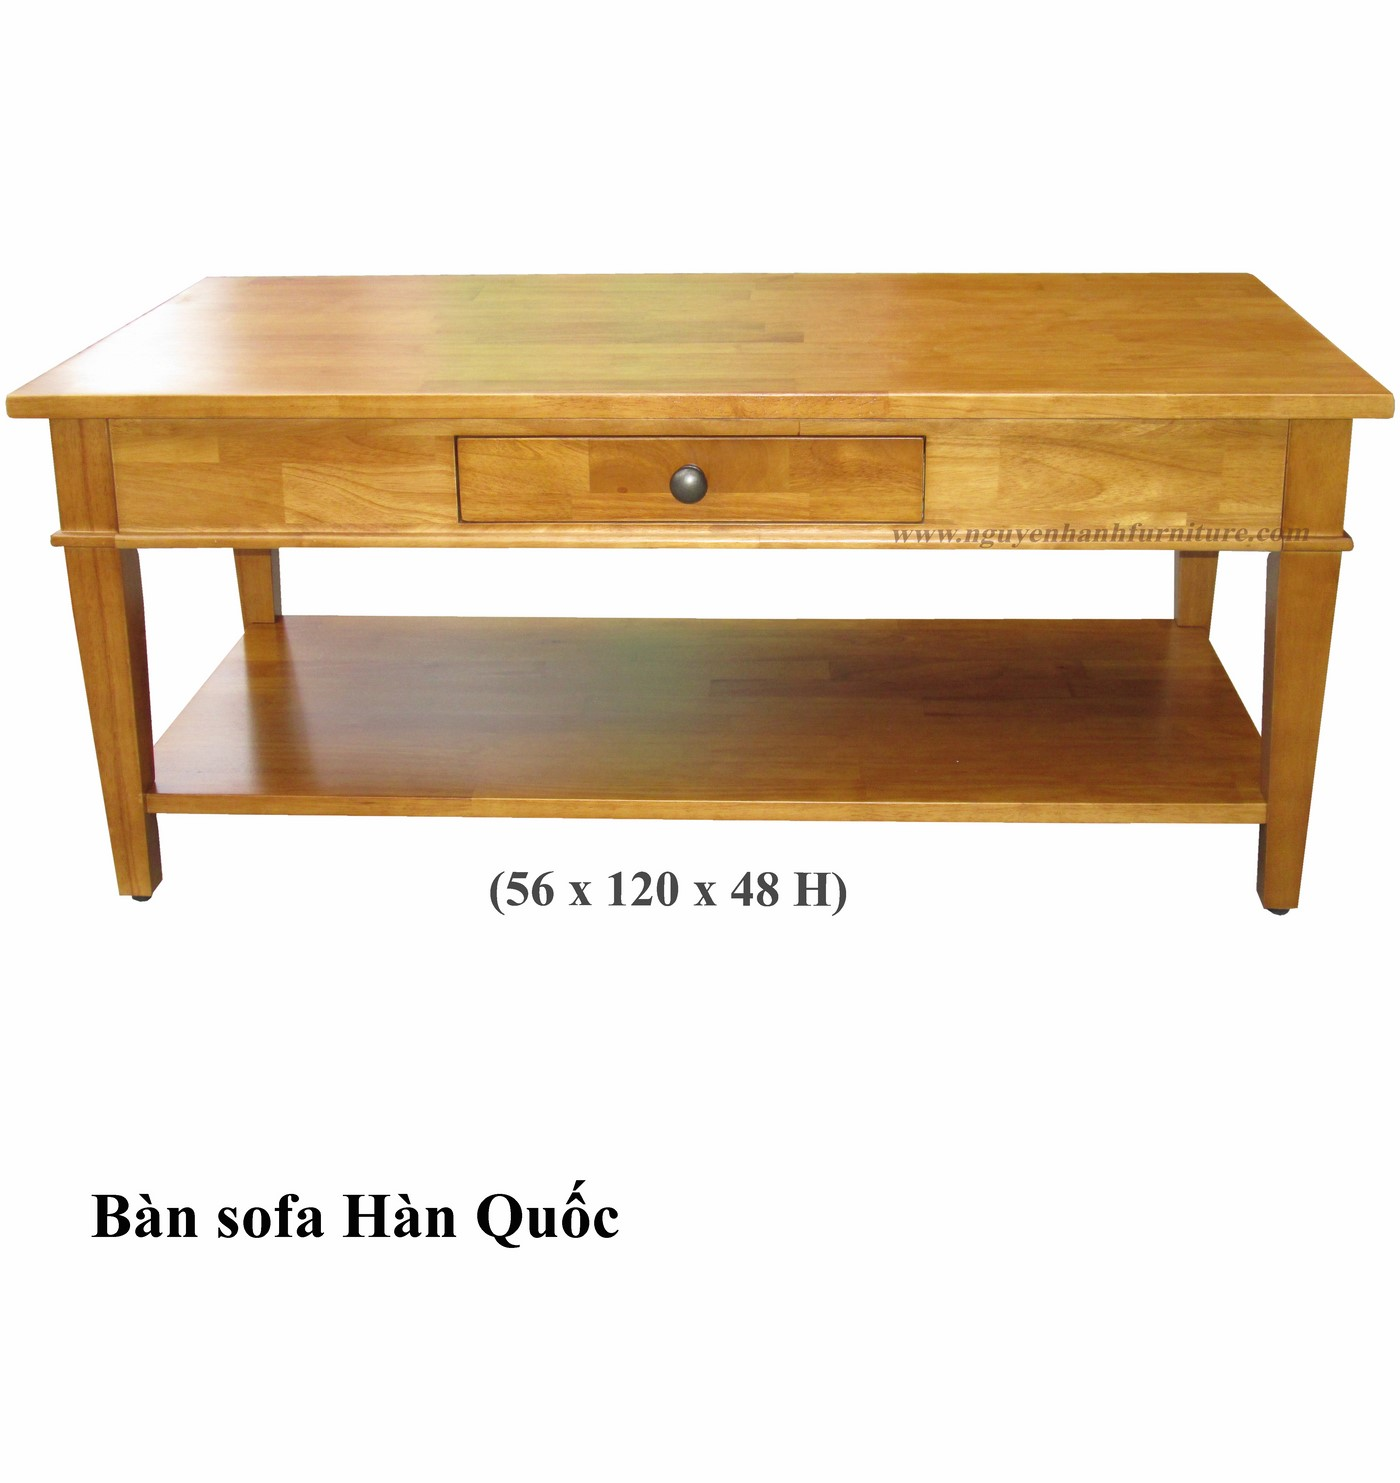 Name product: Sofa table Korea - Yellow Color - Dimensions: 56 x 120 x 48 - Description: Wood natural rubber